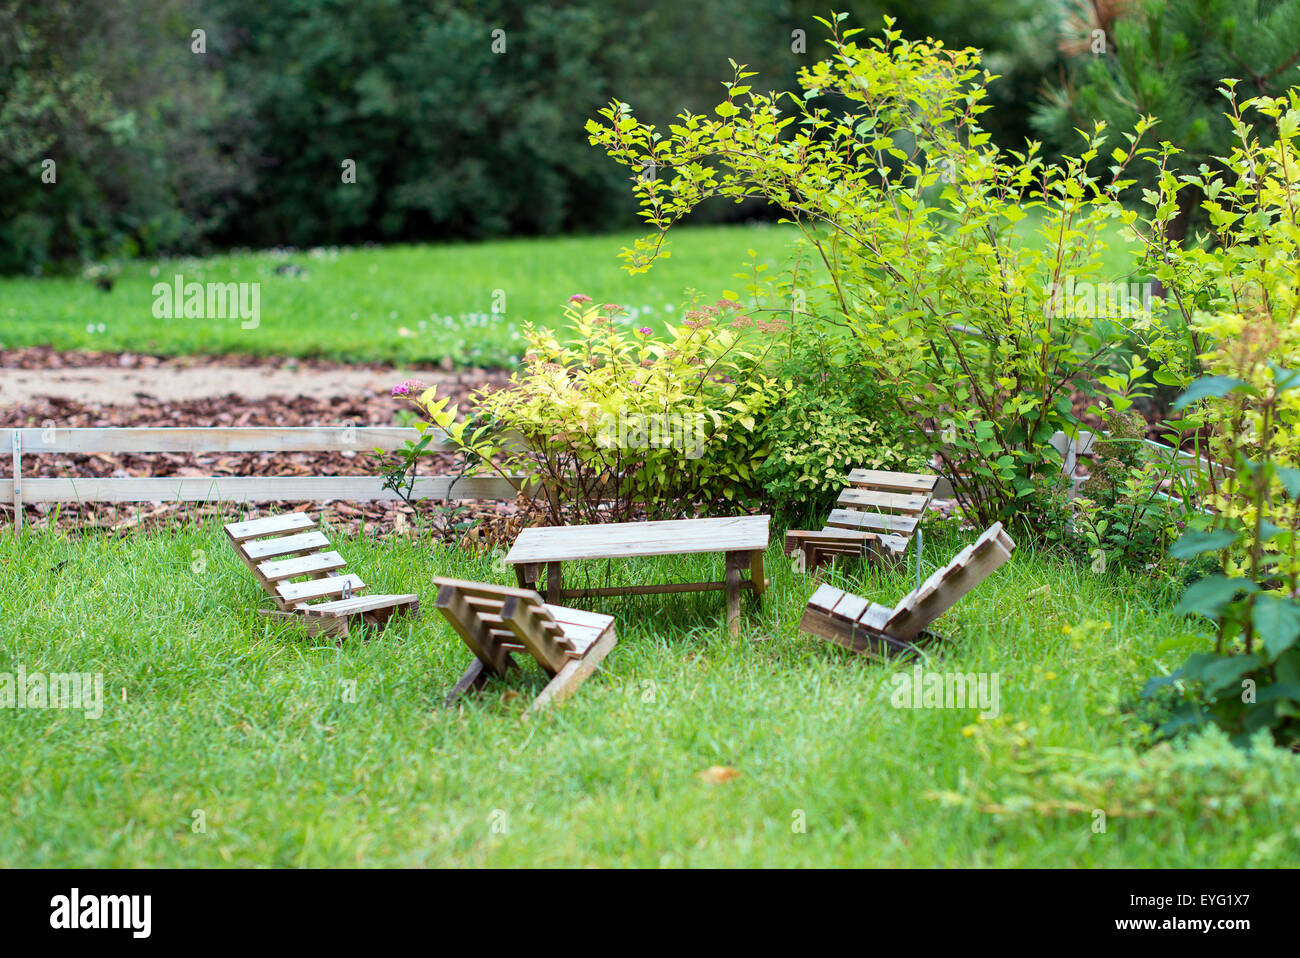 World In Miniature Photos & World In Miniature Images - Alamy